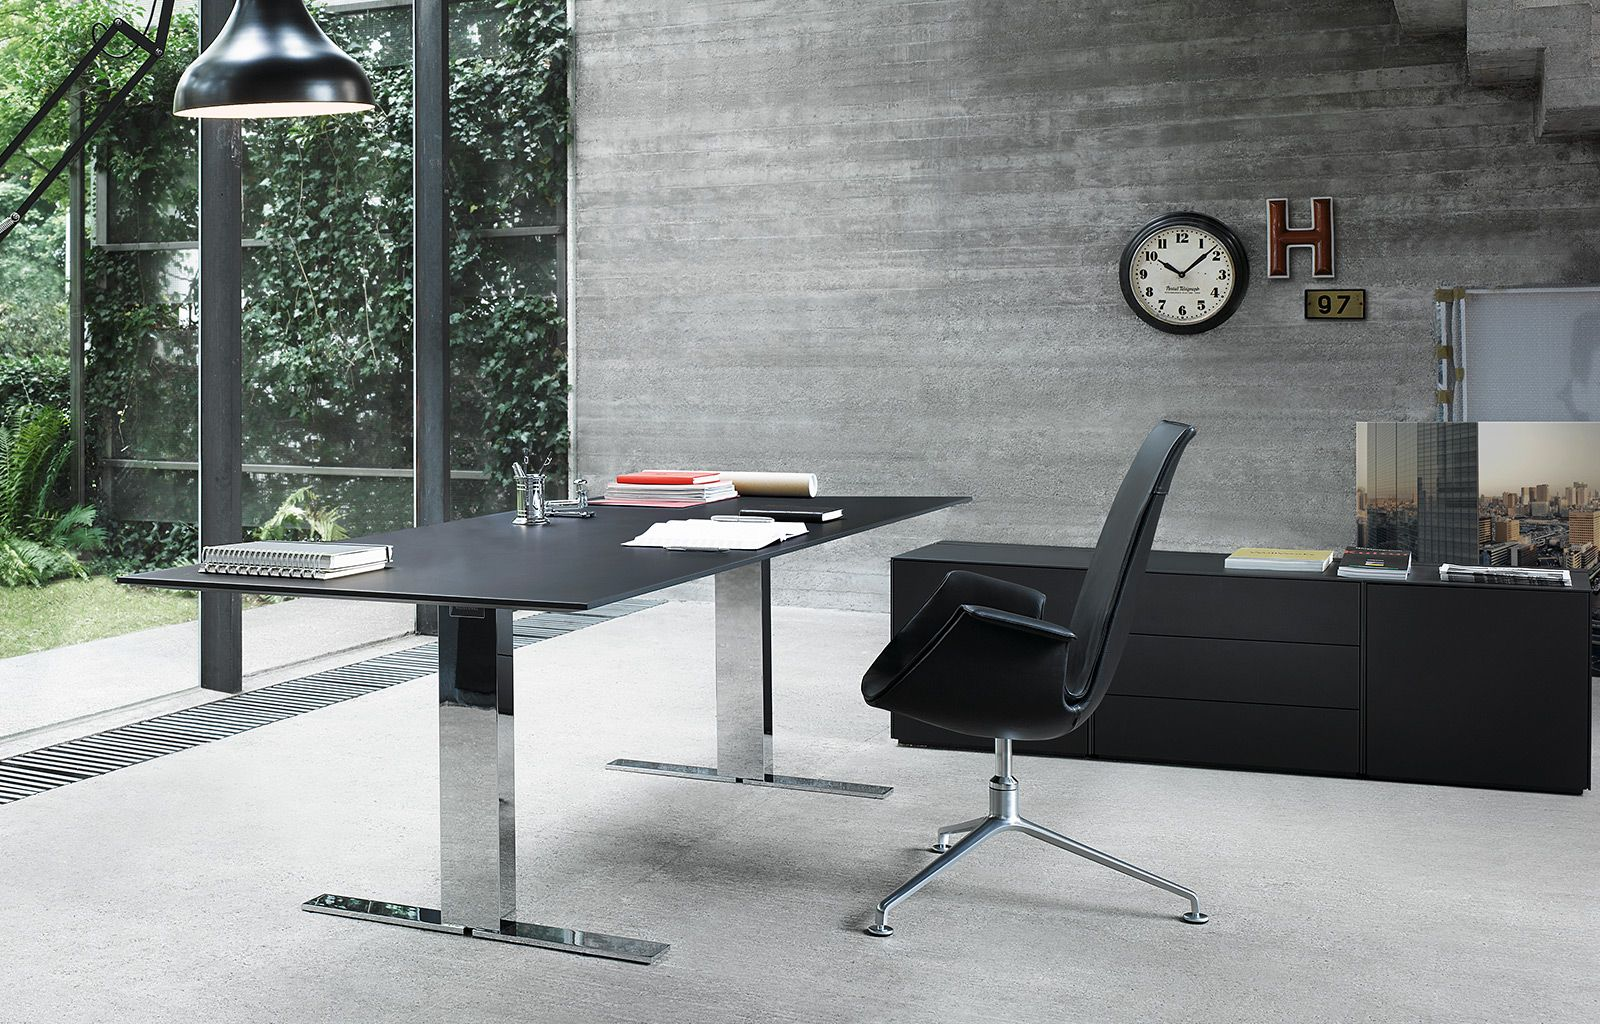 Executive Variable Brings Height Adjustment To The Office Range Stands For Flexible